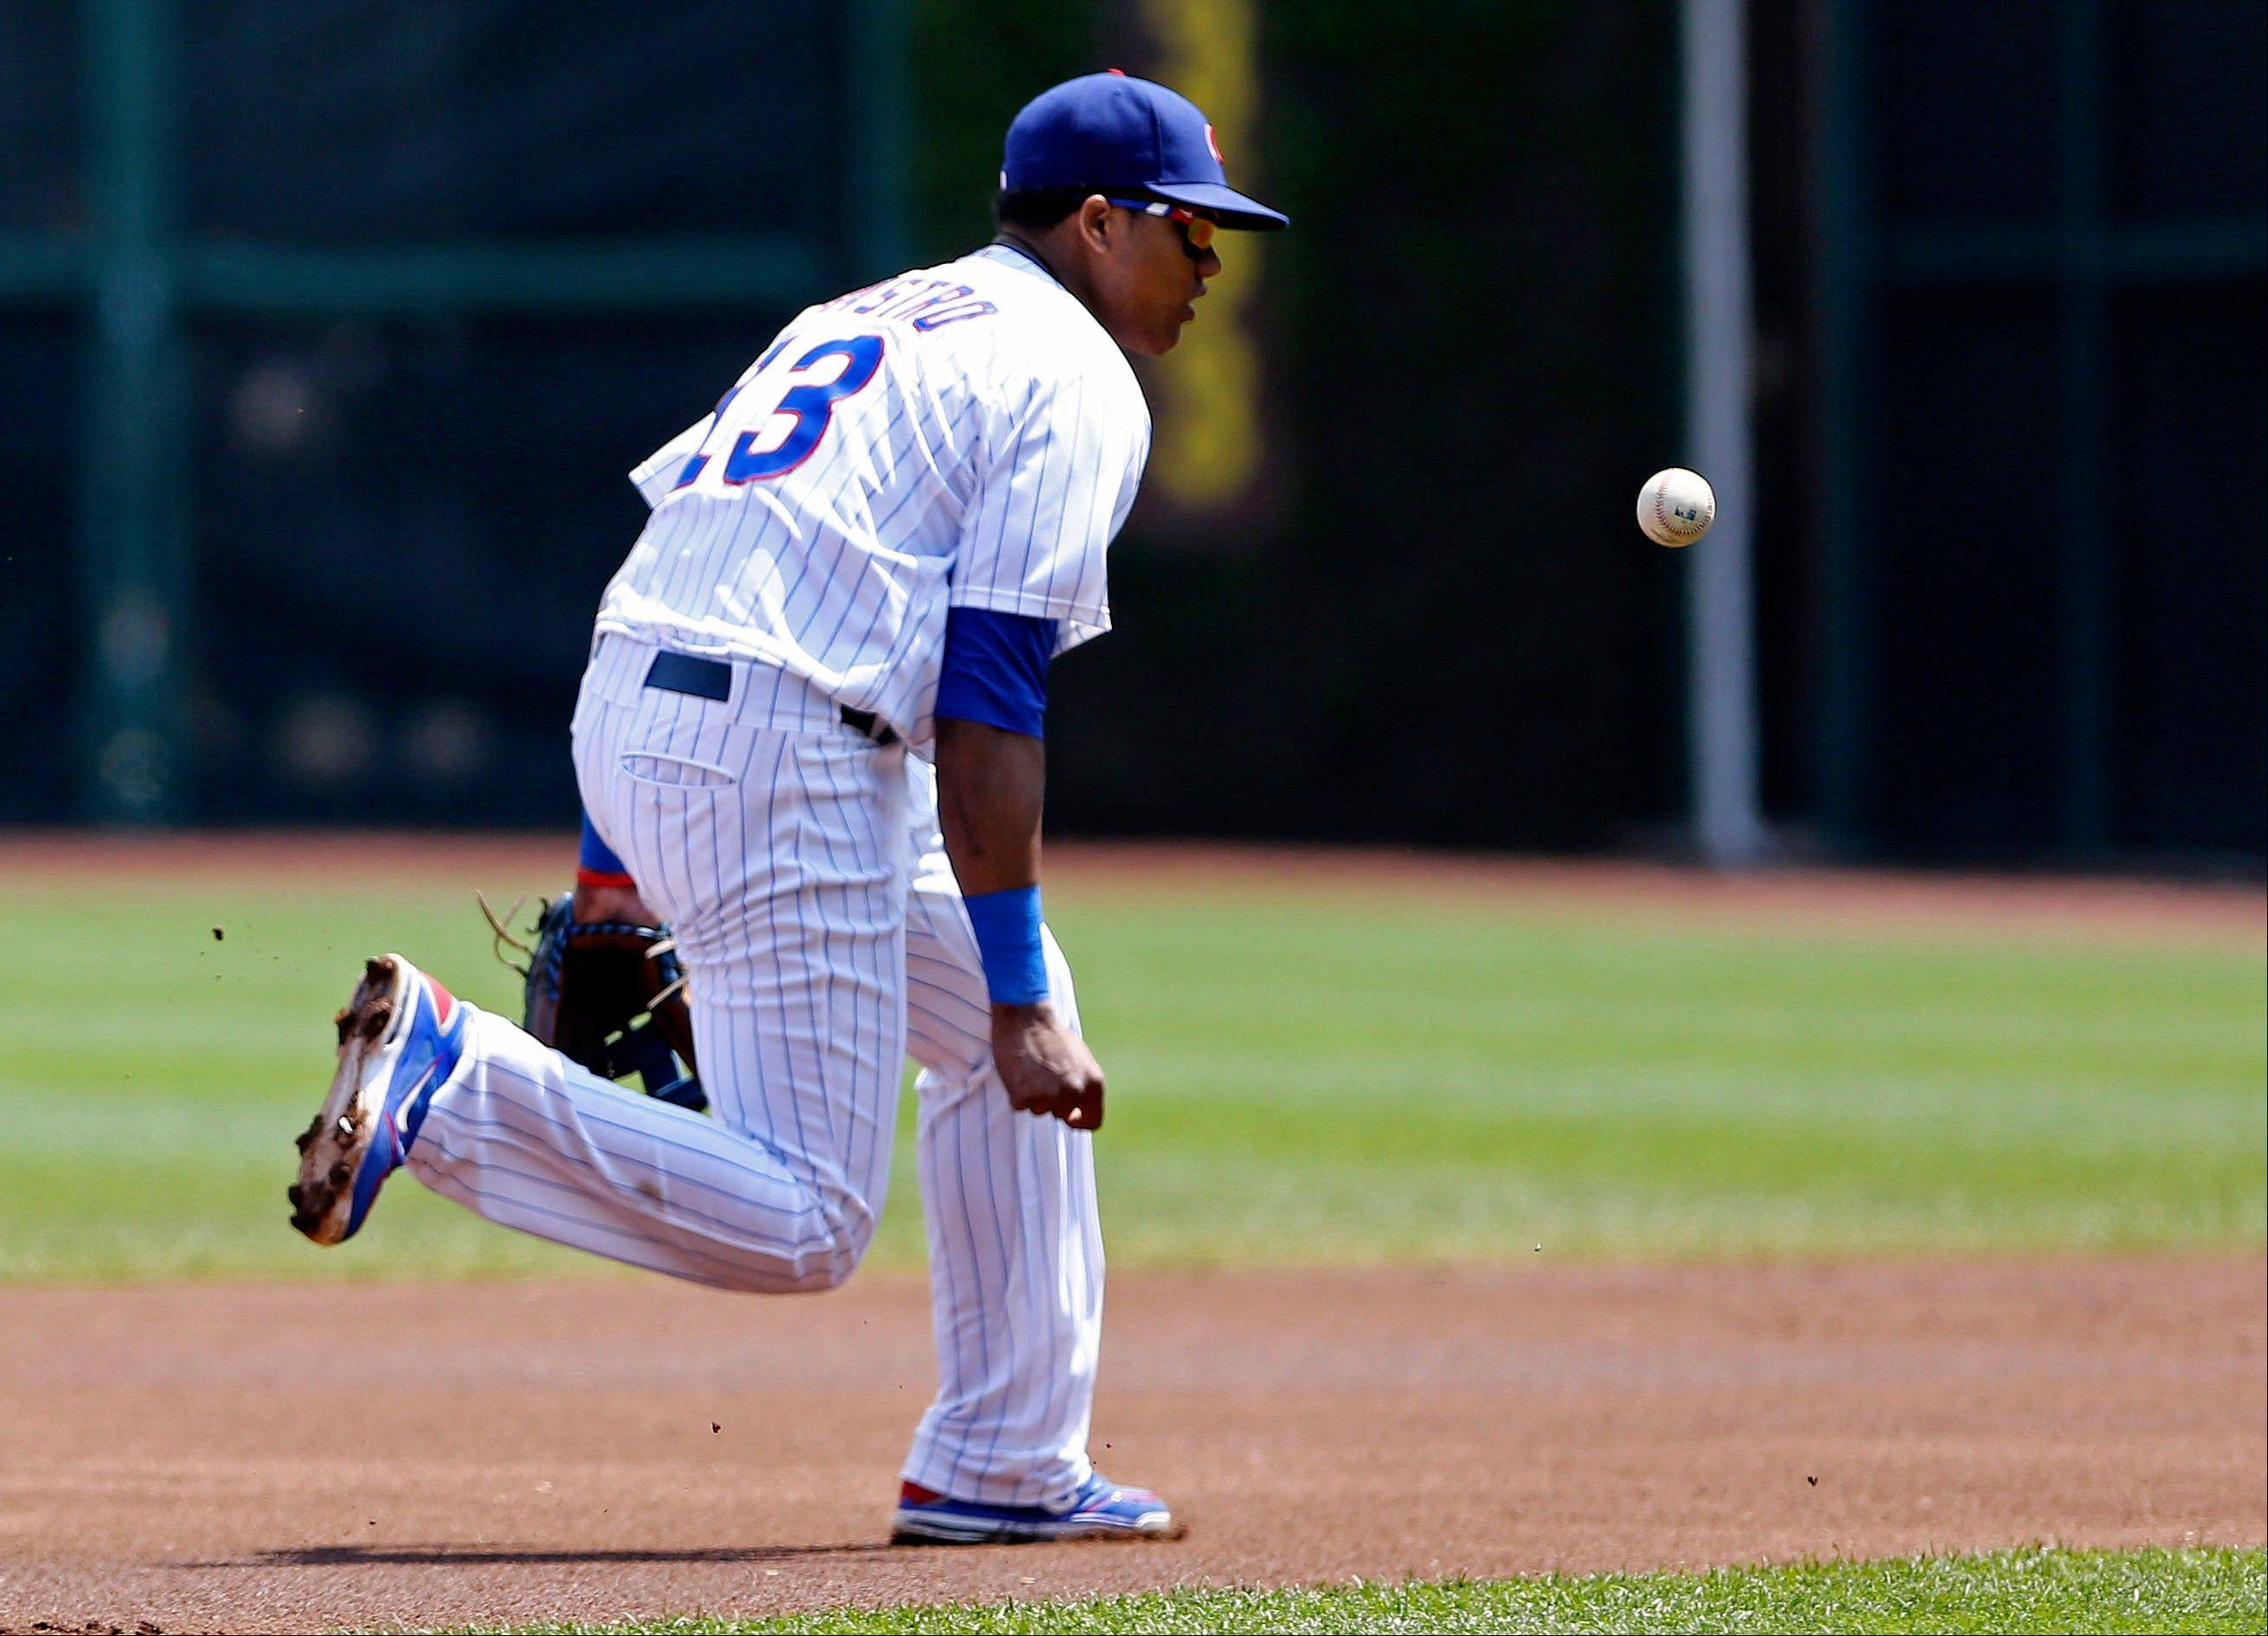 Cubs shortstop Starlin Castro can't handle a hit by the Mets' Daniel Murphy during the first inning of Saturday's game at Wrigley Field.